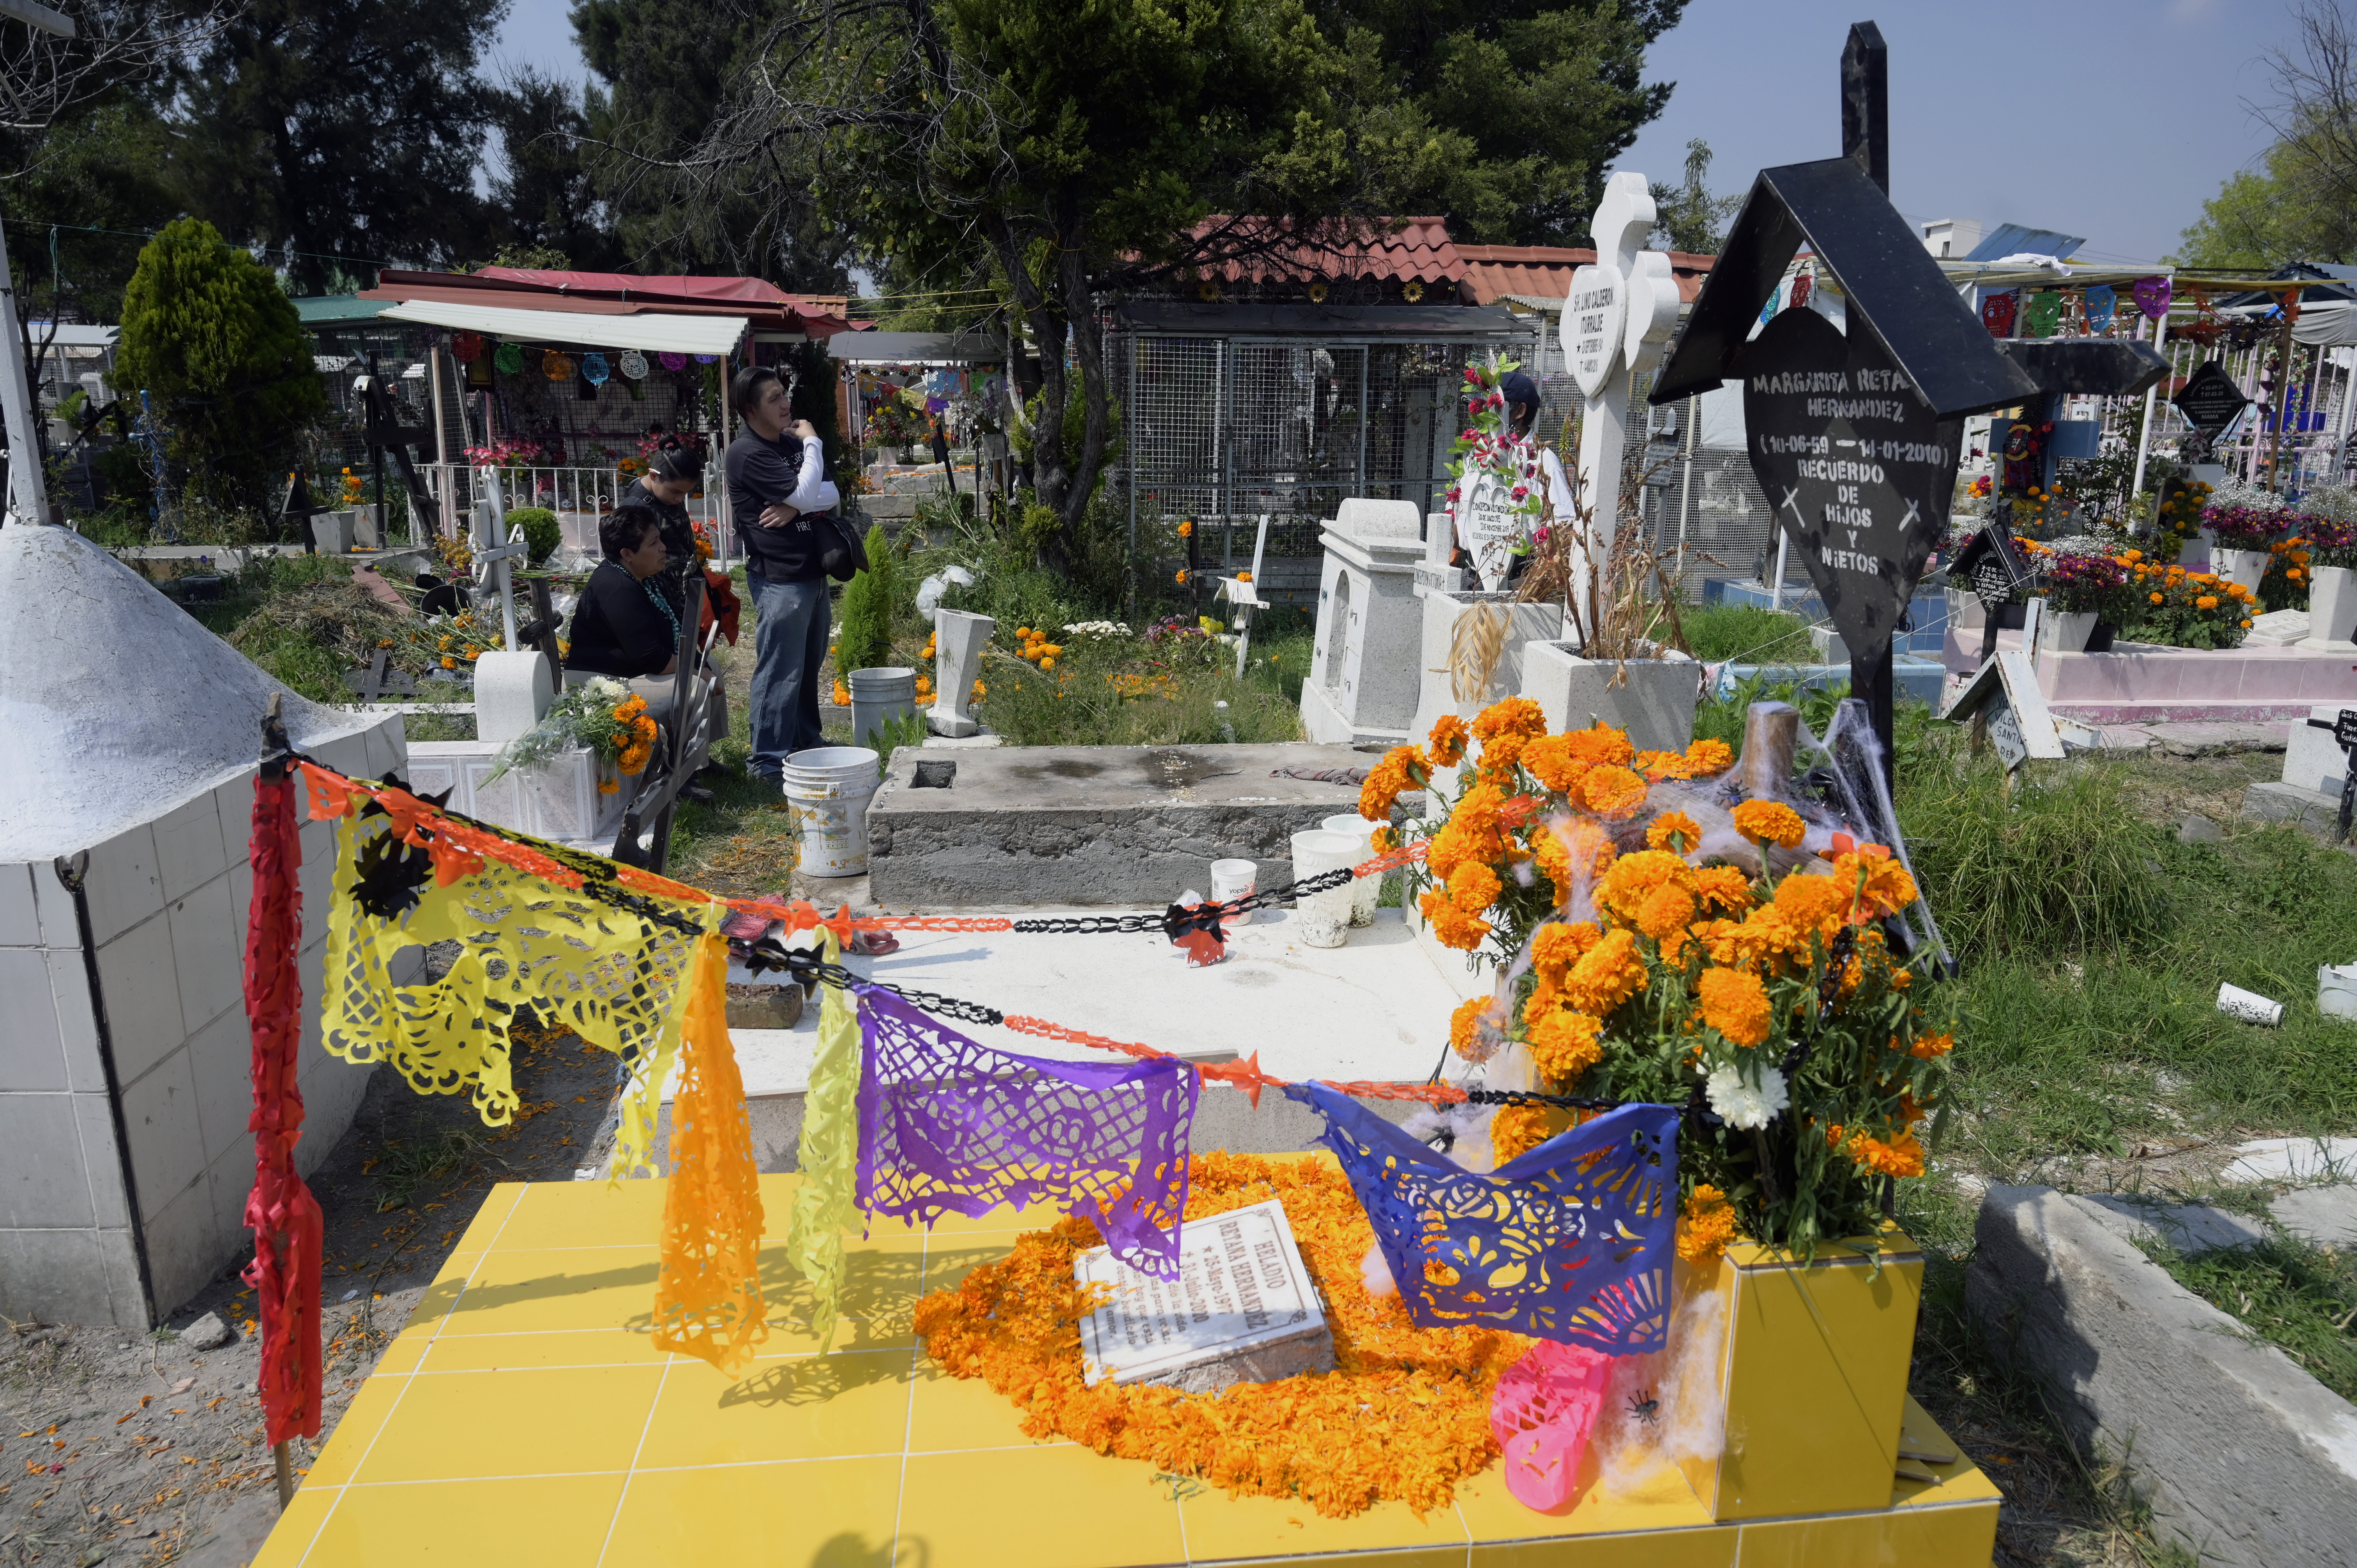 A family visit a relative's grave prior to the Day of the Dead at the Panteon San Jose, in Mexico City on October 28, 2020. - Due to the orange alert declared due to the Covid-19 pandemic, the authorities have decided to close the pantheons to visitors on November 1 and 2, the date that the dead are celebrated. (Photo by ALFREDO ESTRELLA / AFP)